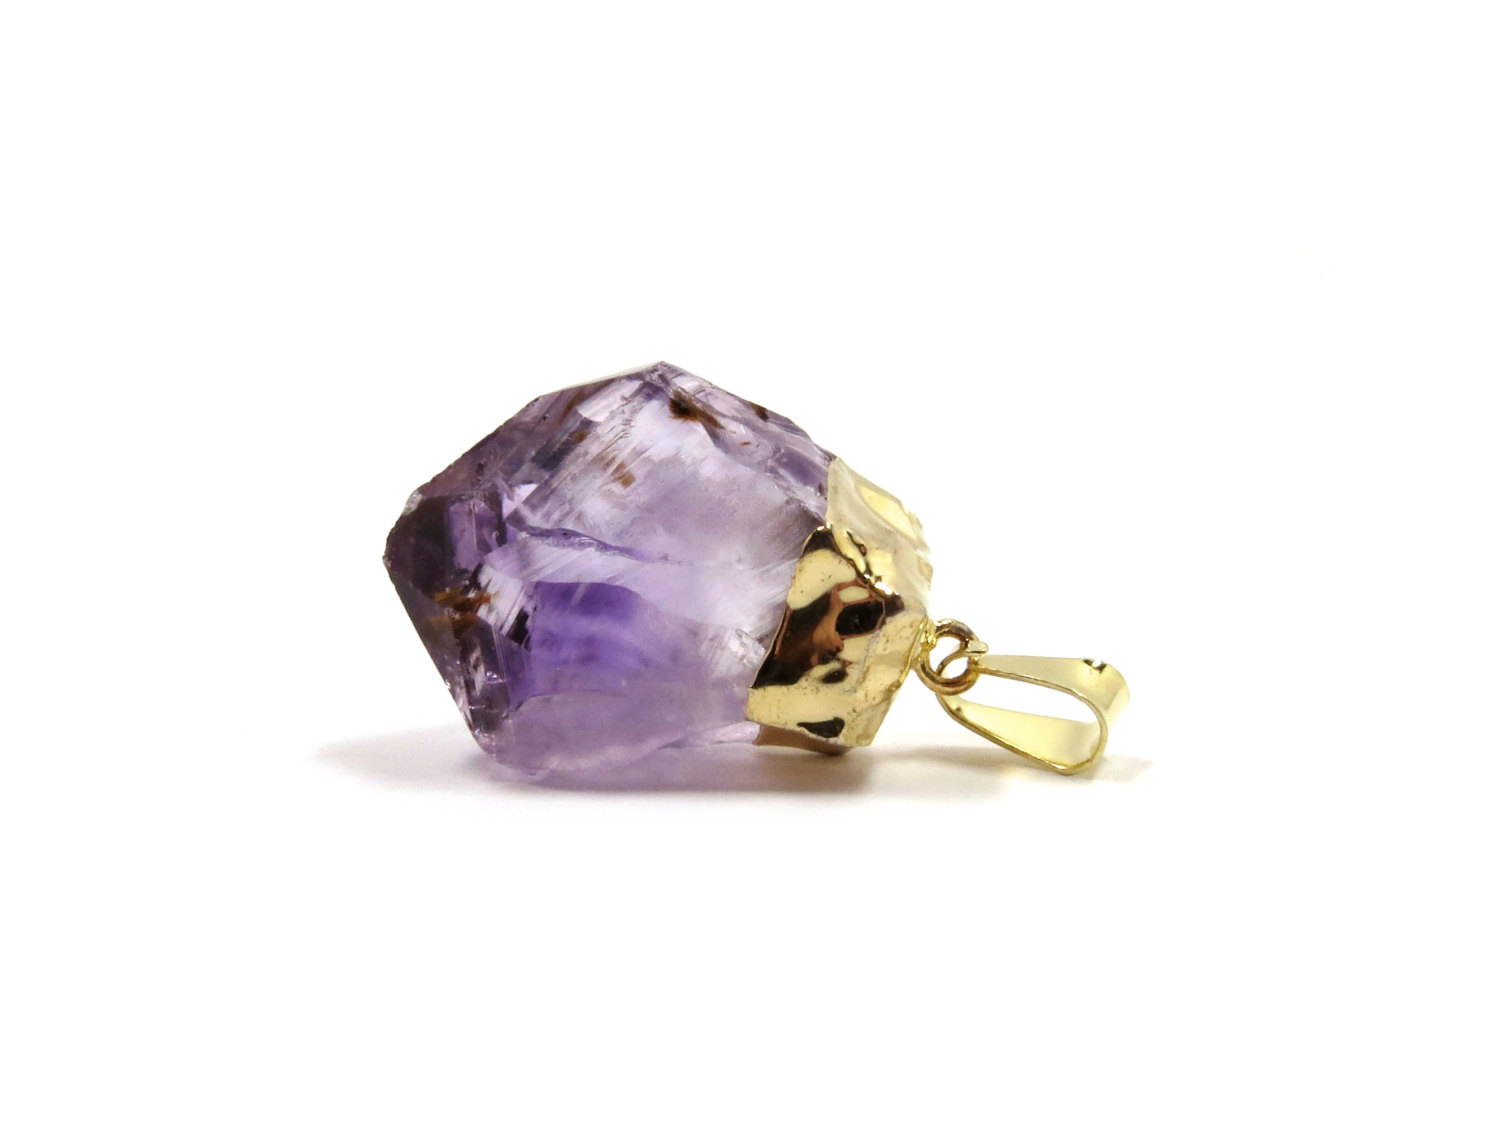 rough rawamethystcrystalnecklace j pendant jewelry necklace products selected lady amethyst raw